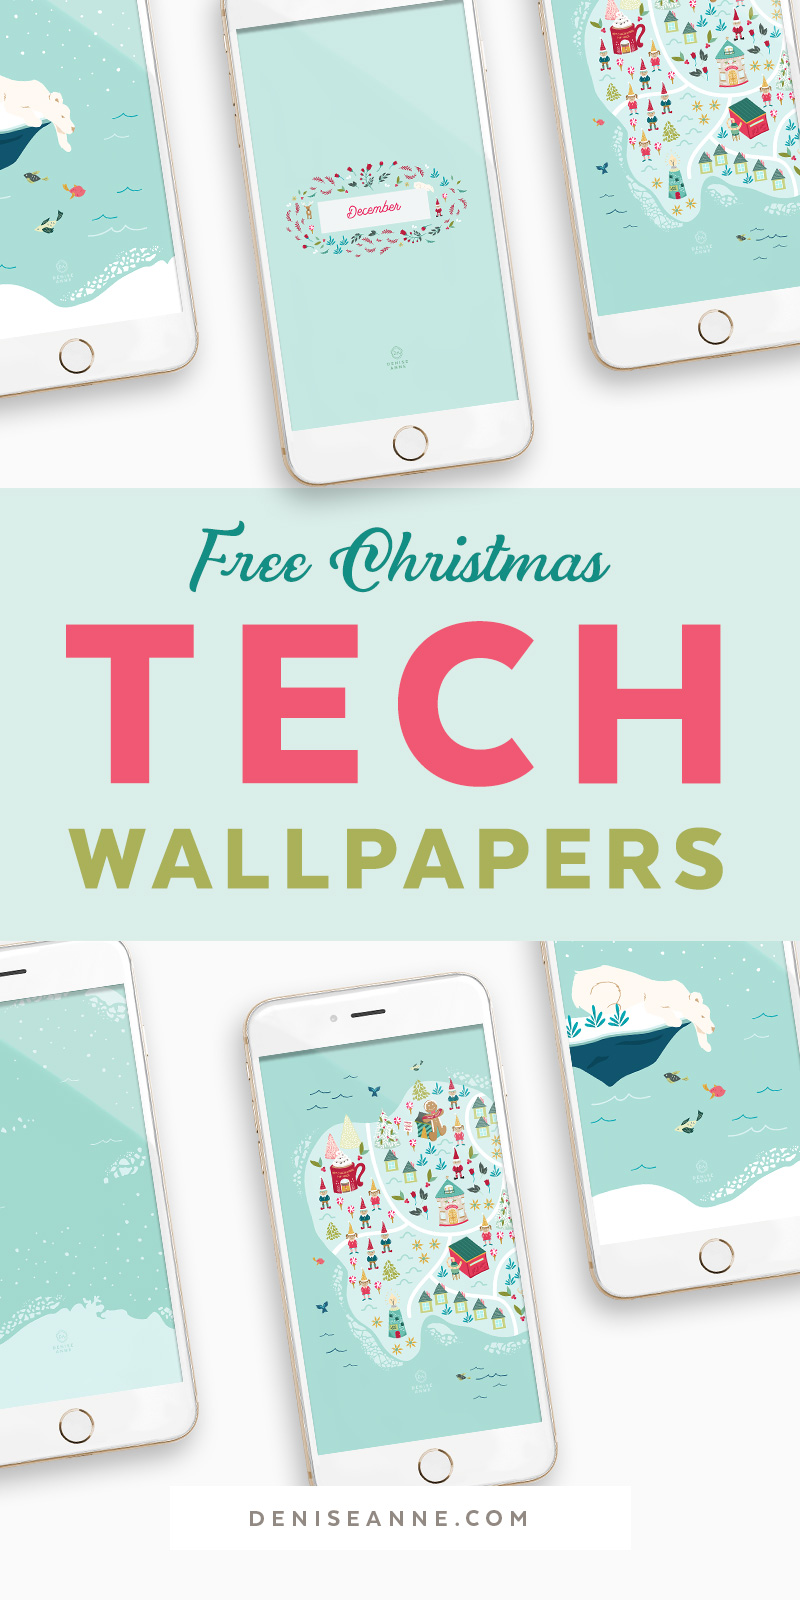 Free Christmas Phone Wallpapers Santa S North Designs Denise Anne